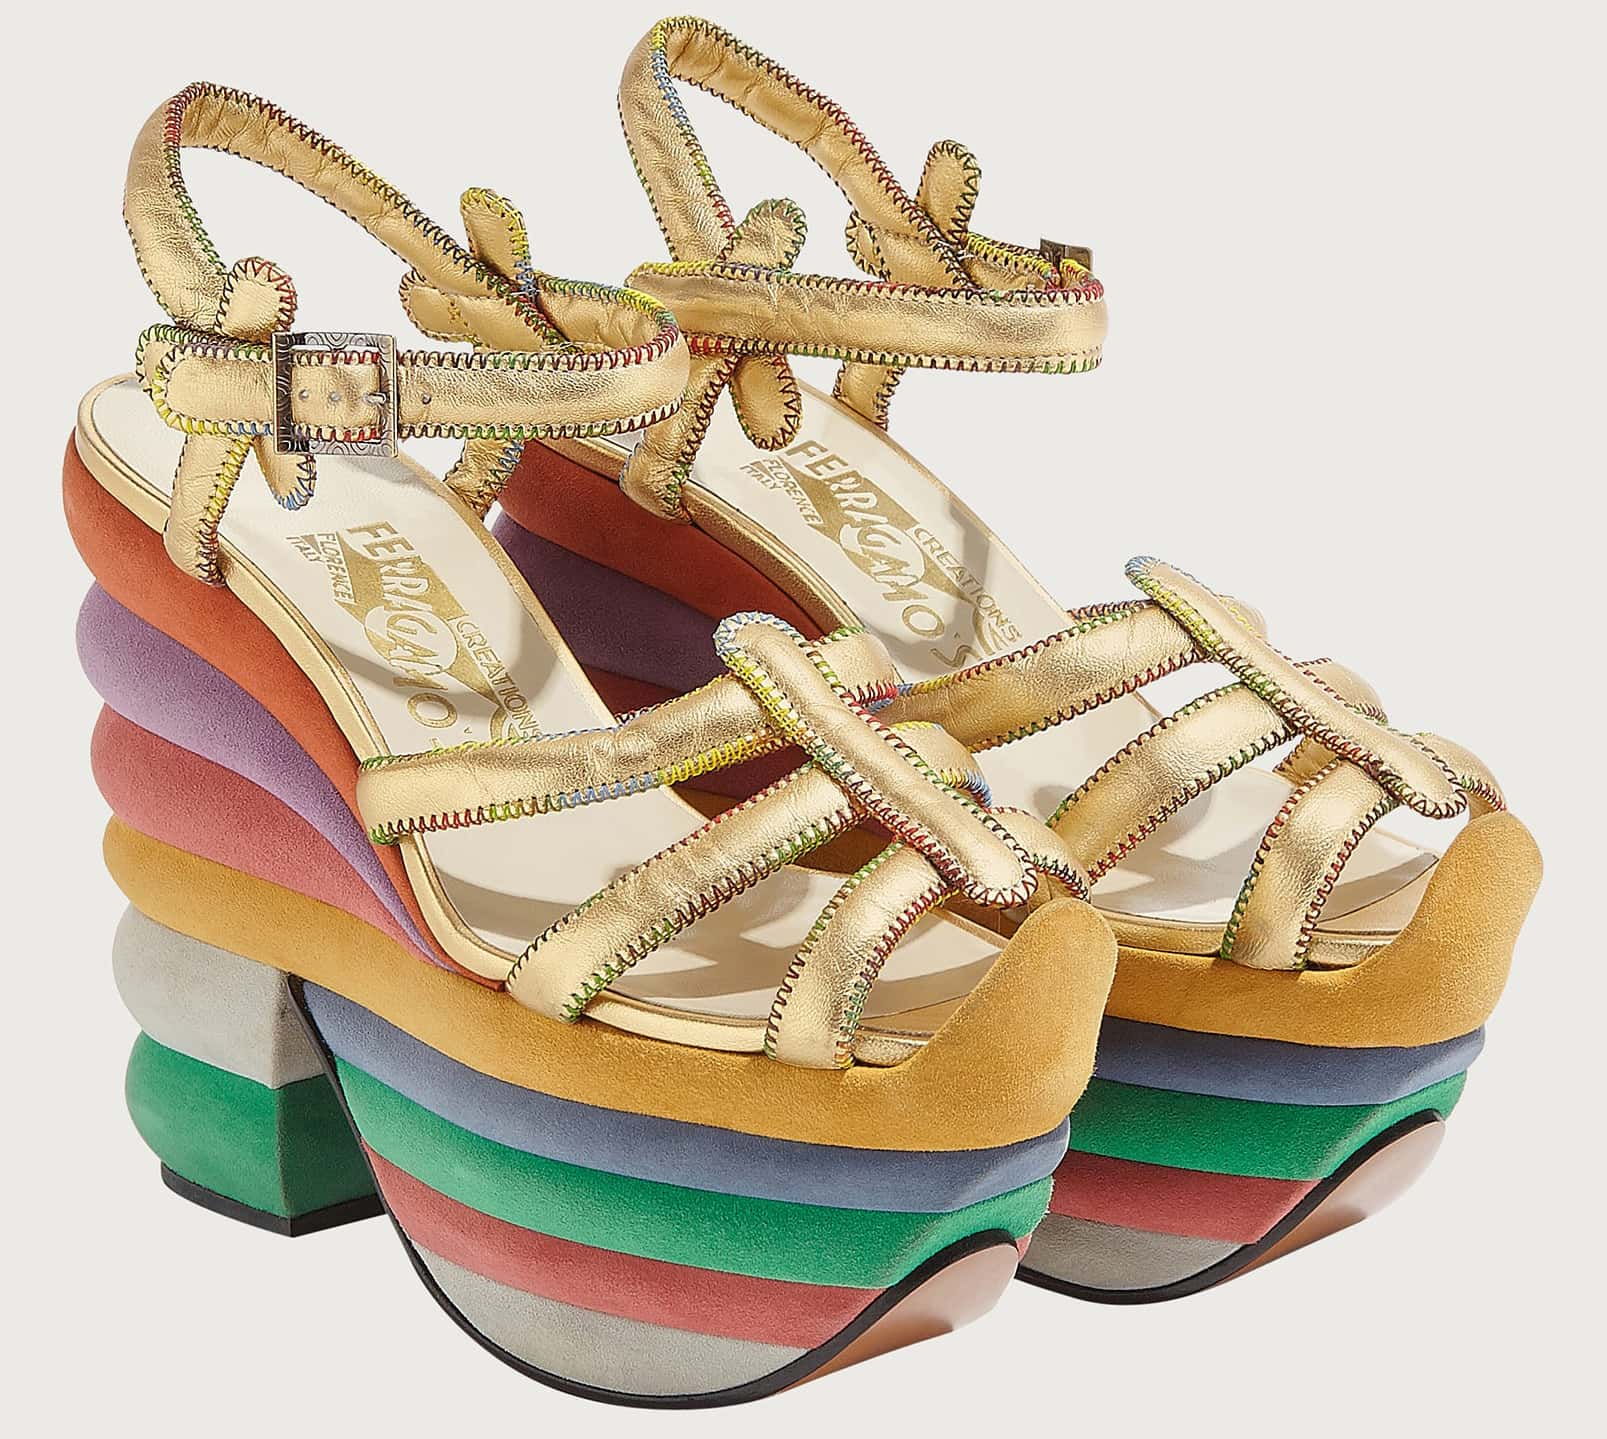 Created in 1938 for Judy Garland, Salvatore Ferragamo's Rainbow platform sandals feature shaped slabs of cork covered in colorful suede